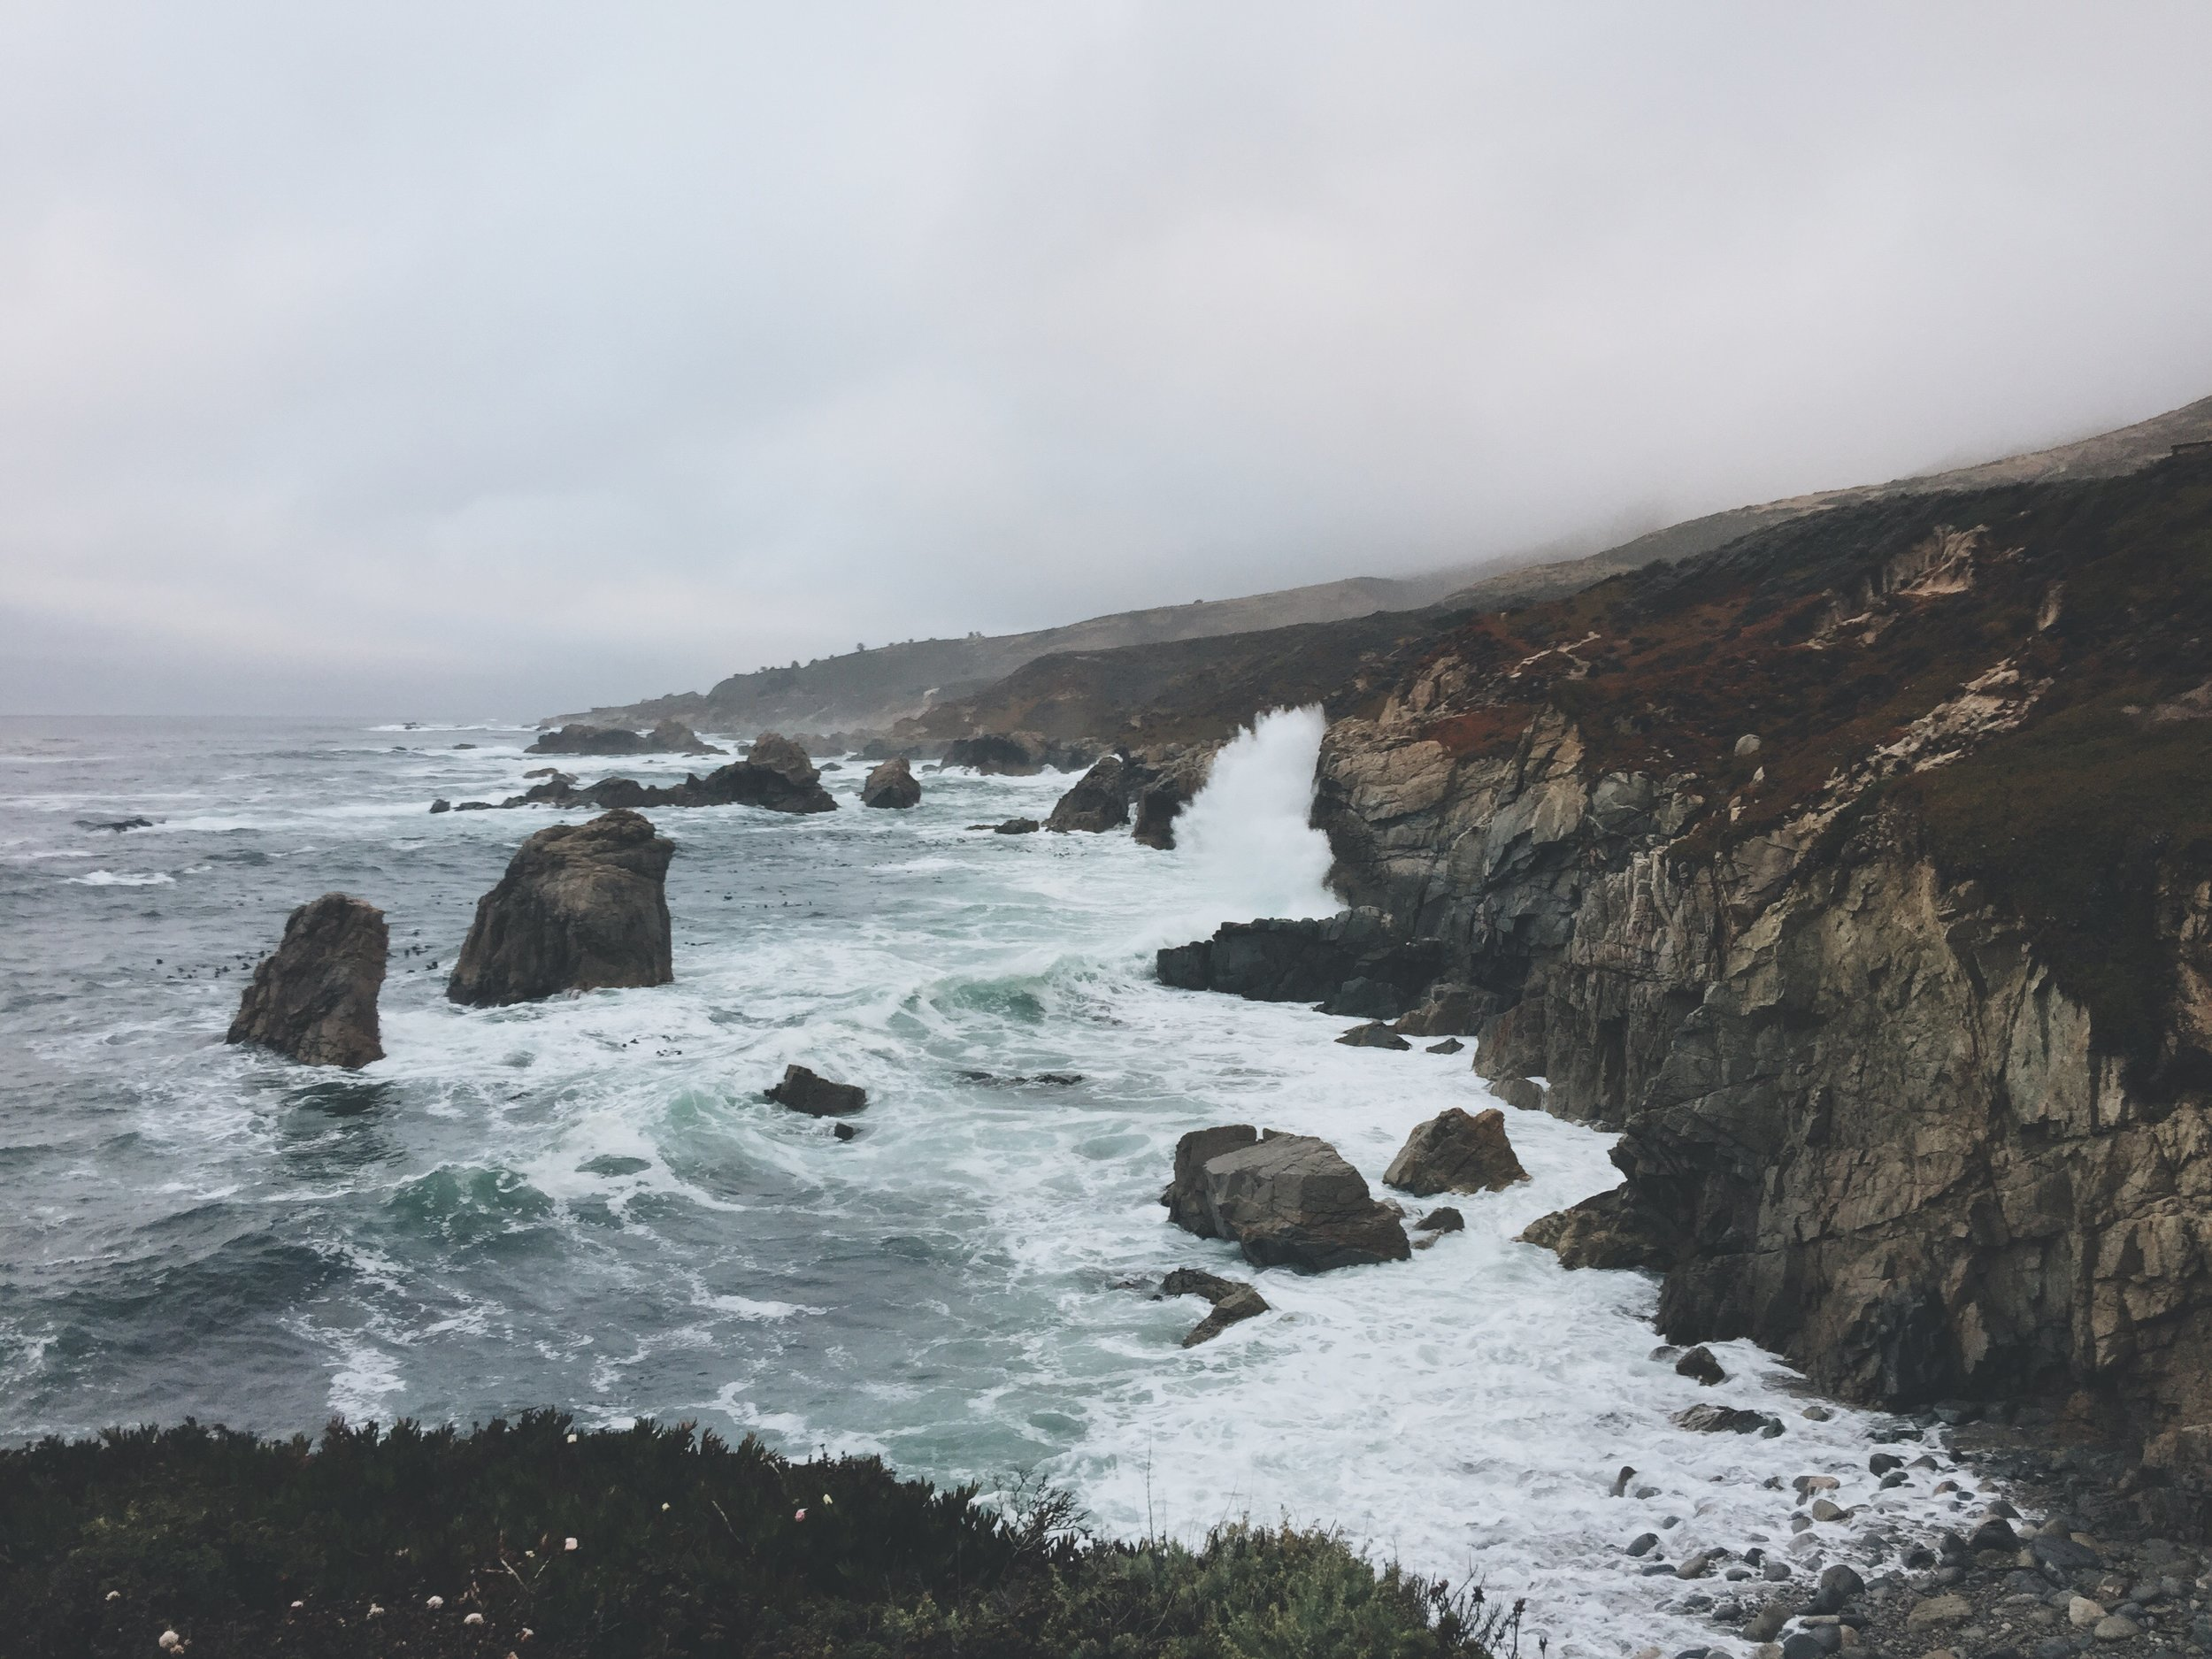 Garrapata Bluff Trail Tide coming in Big Sur California photo by Ricky Stephens of A Modern Villain